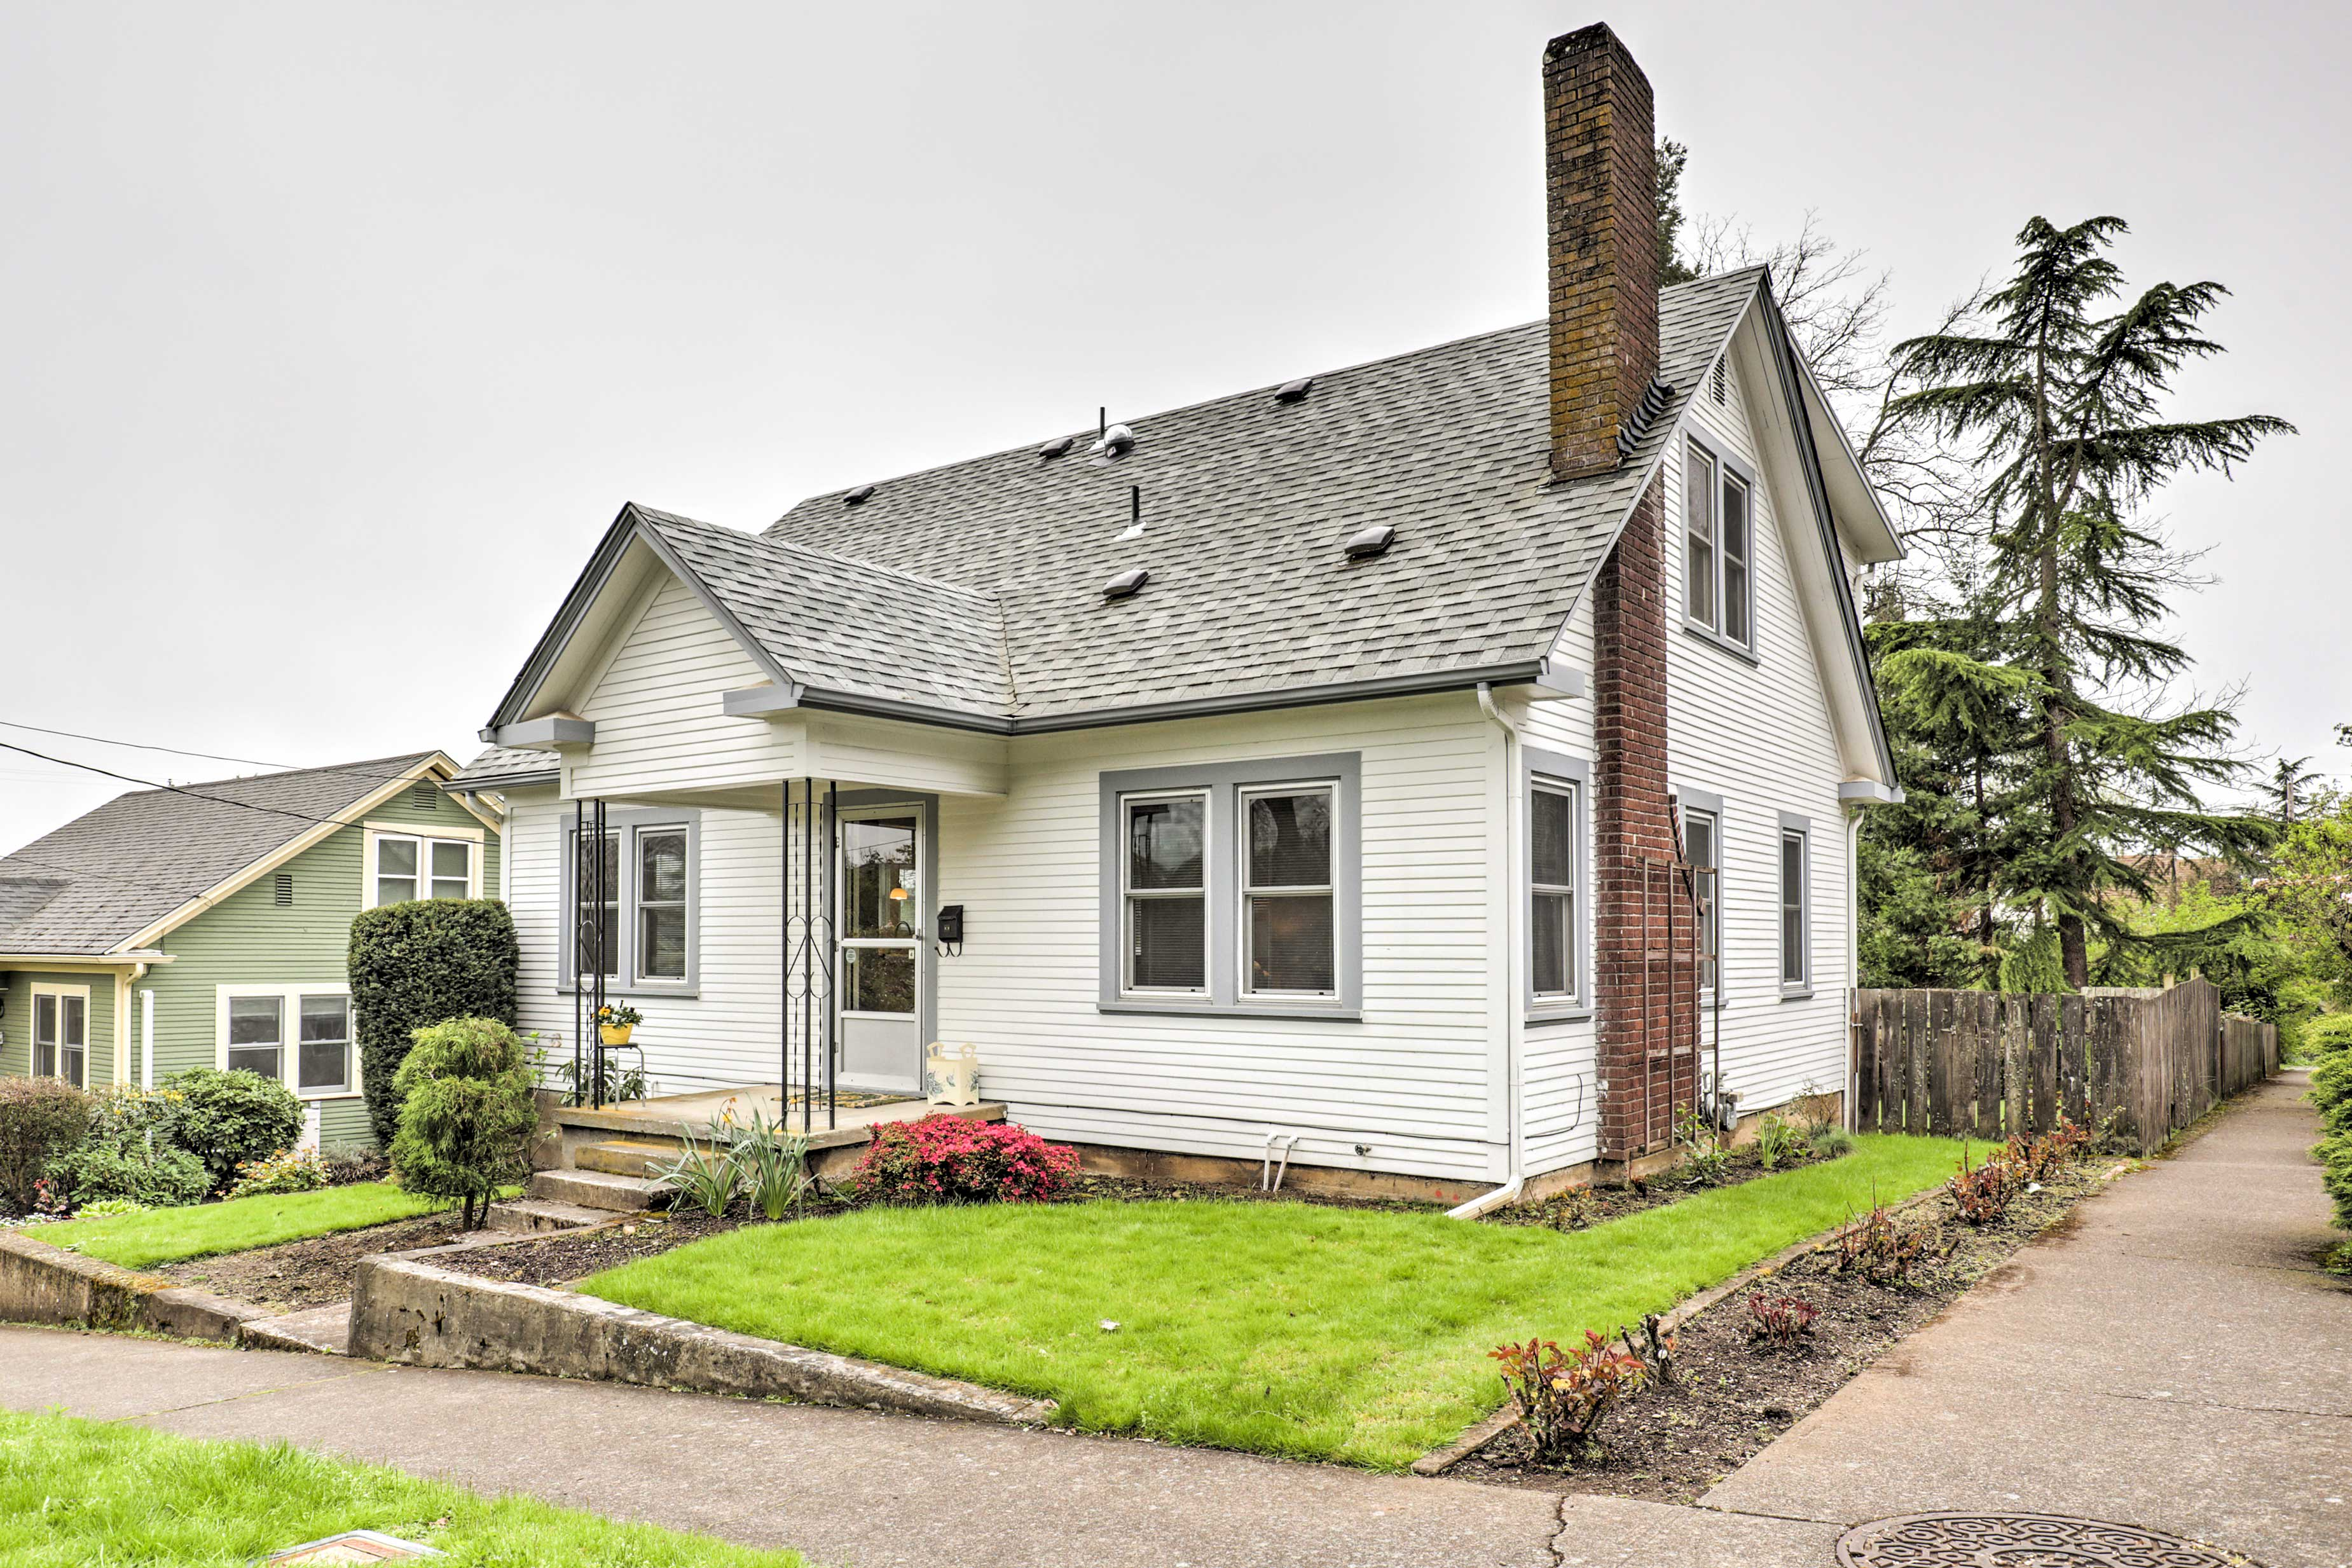 Book this pristine home for the ultimate Eugene getaway!